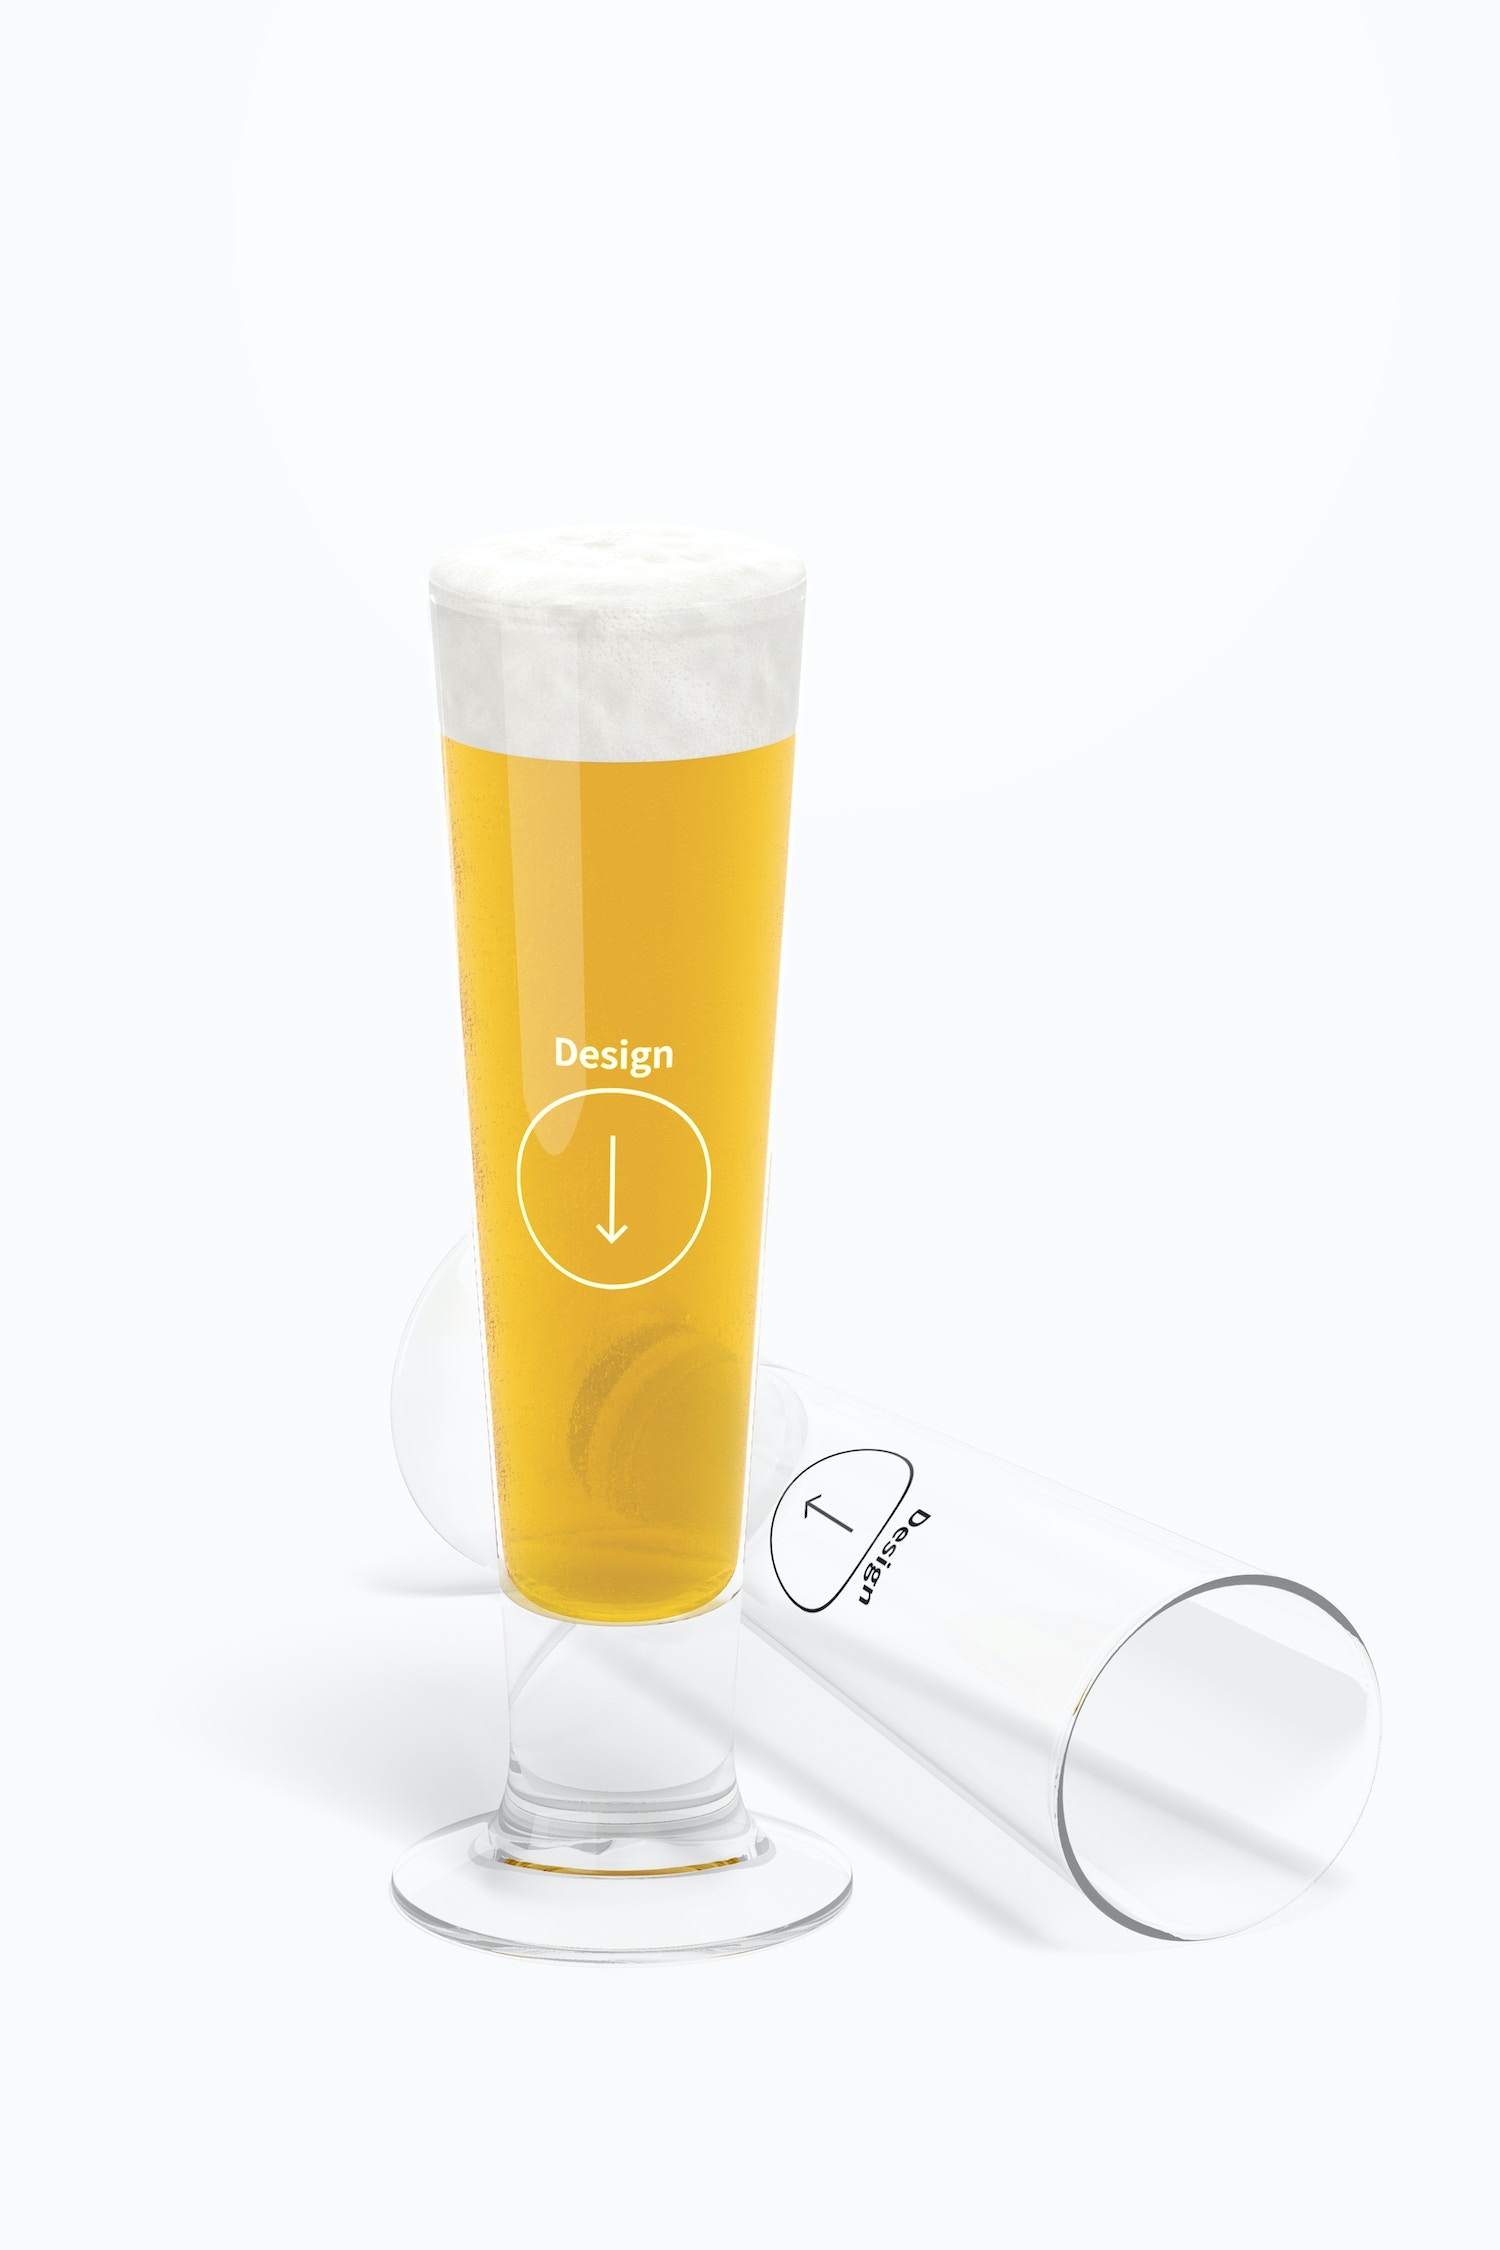 14 oz Glass Beer Cups Mockup, Dropped